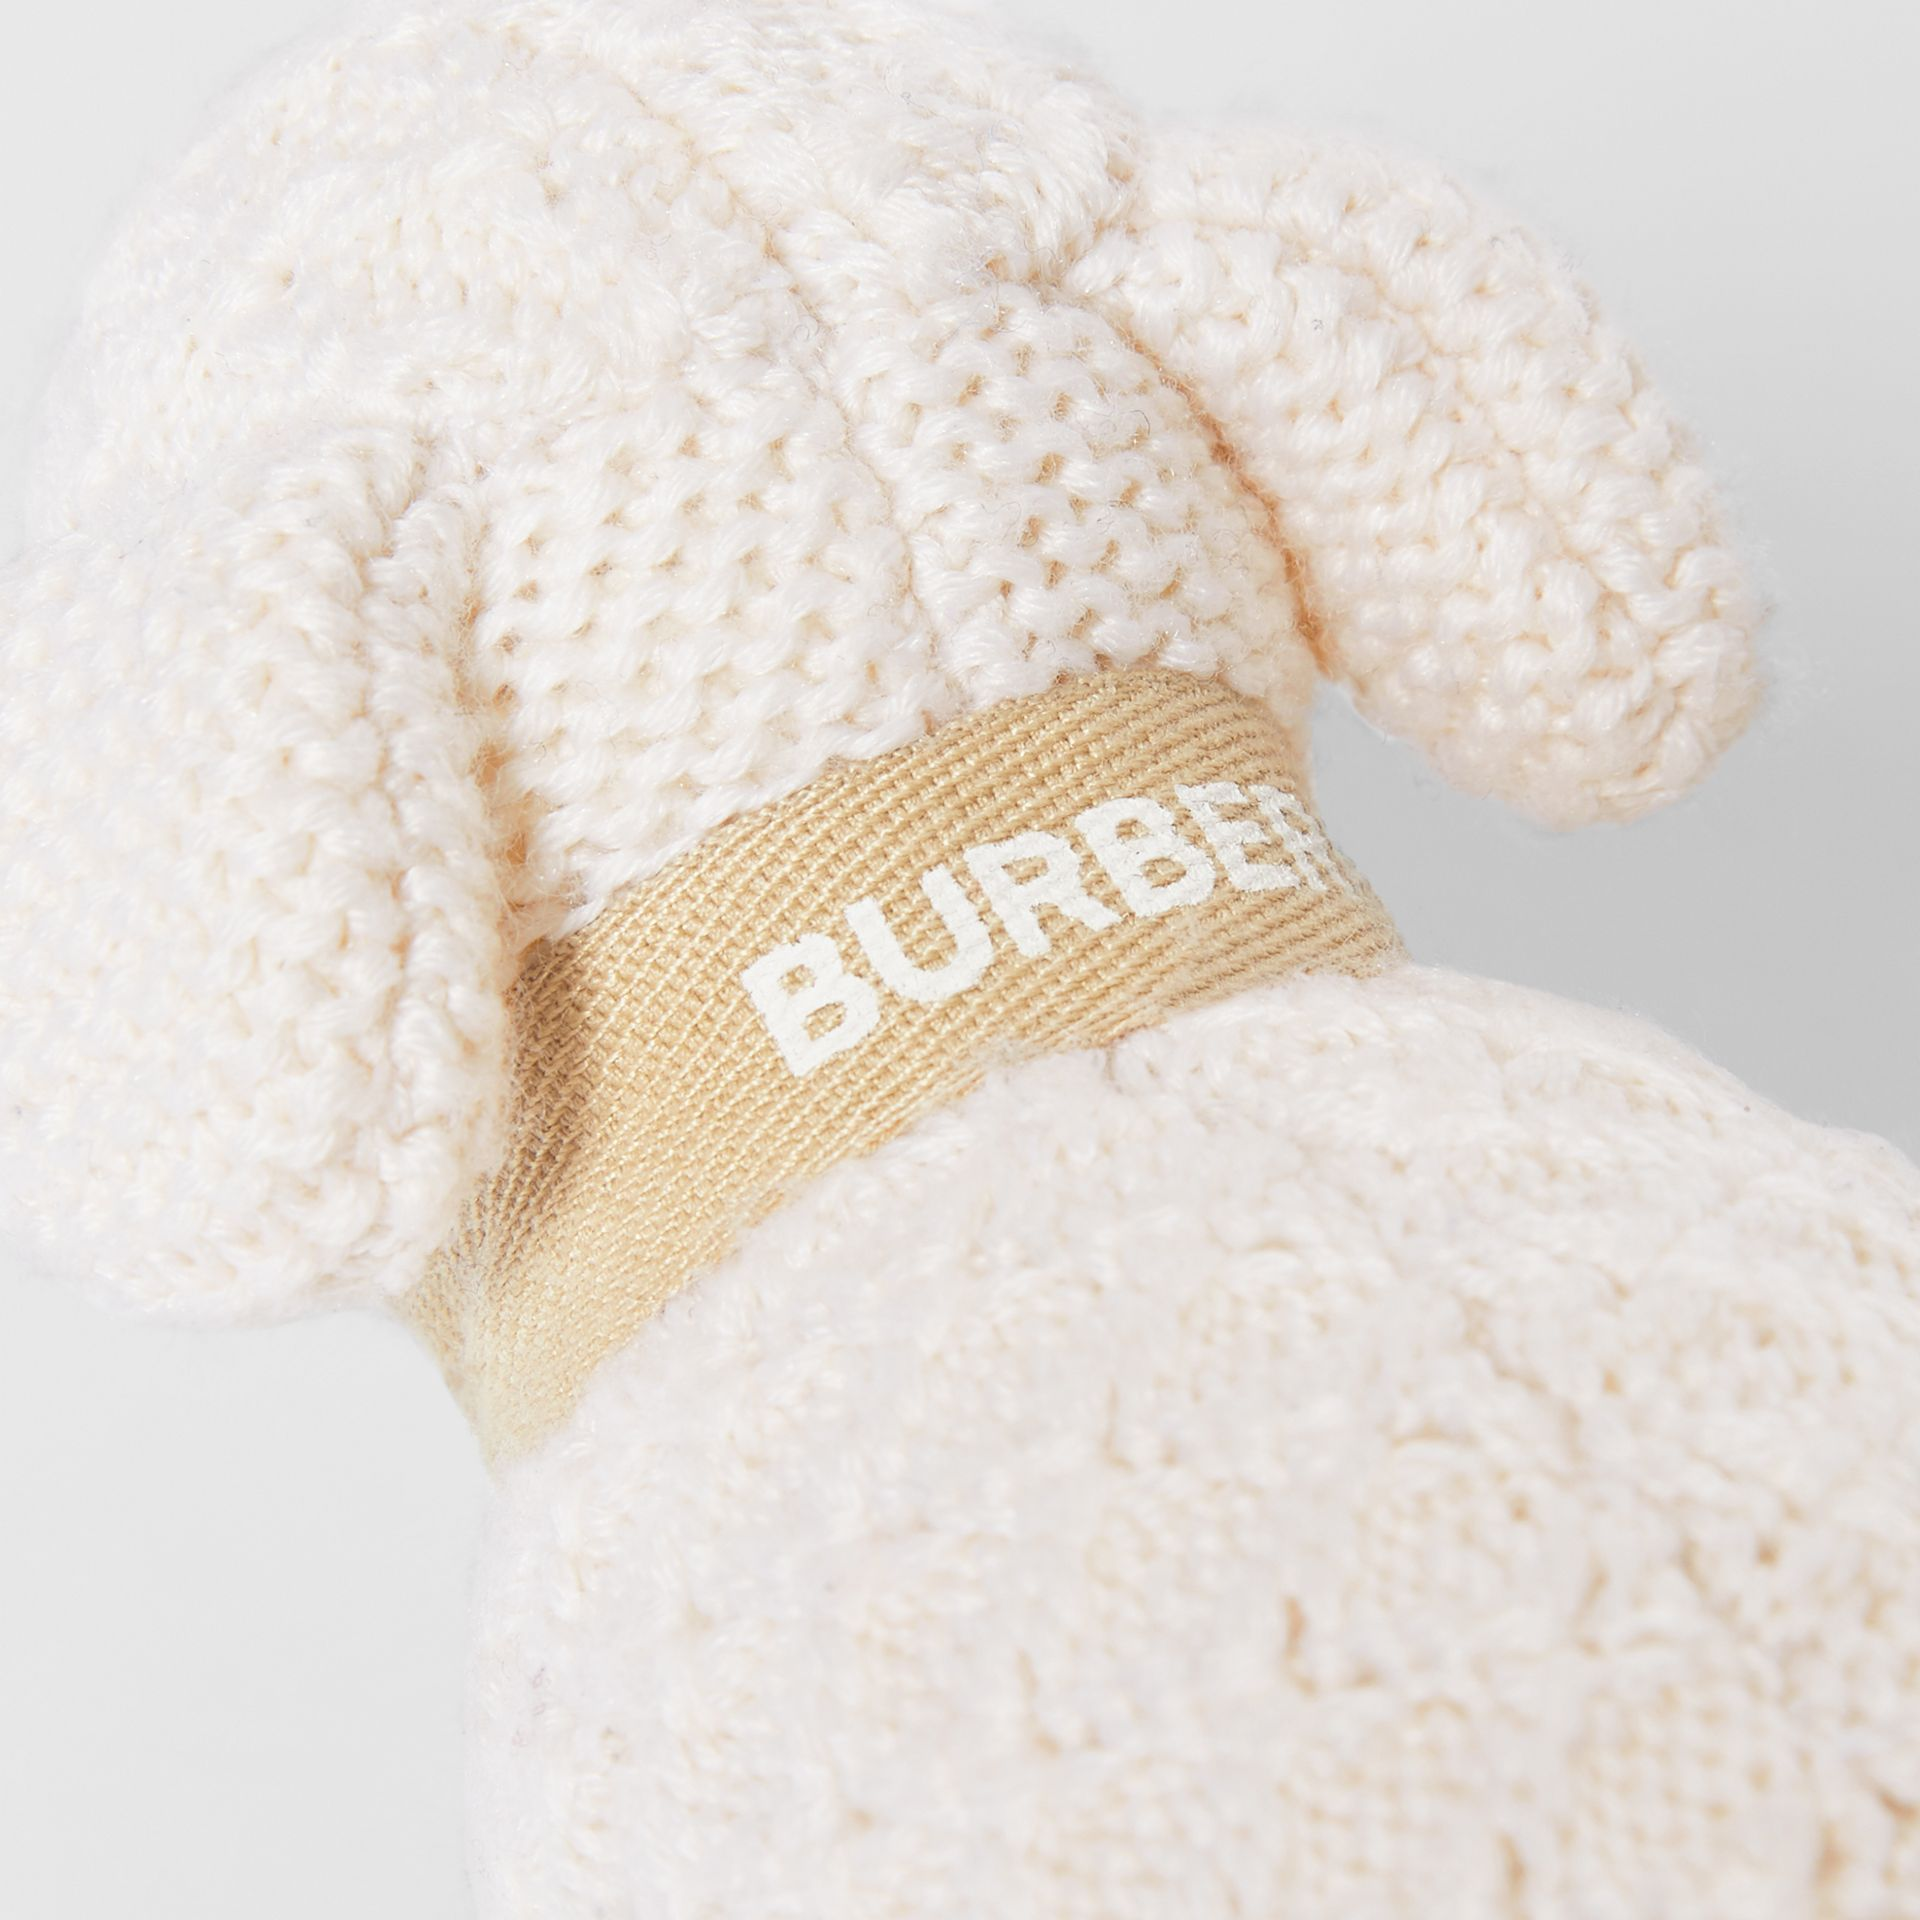 Logo Print Wool Cashmere Six-piece Baby Gift Set in Ivory - Children | Burberry - gallery image 11